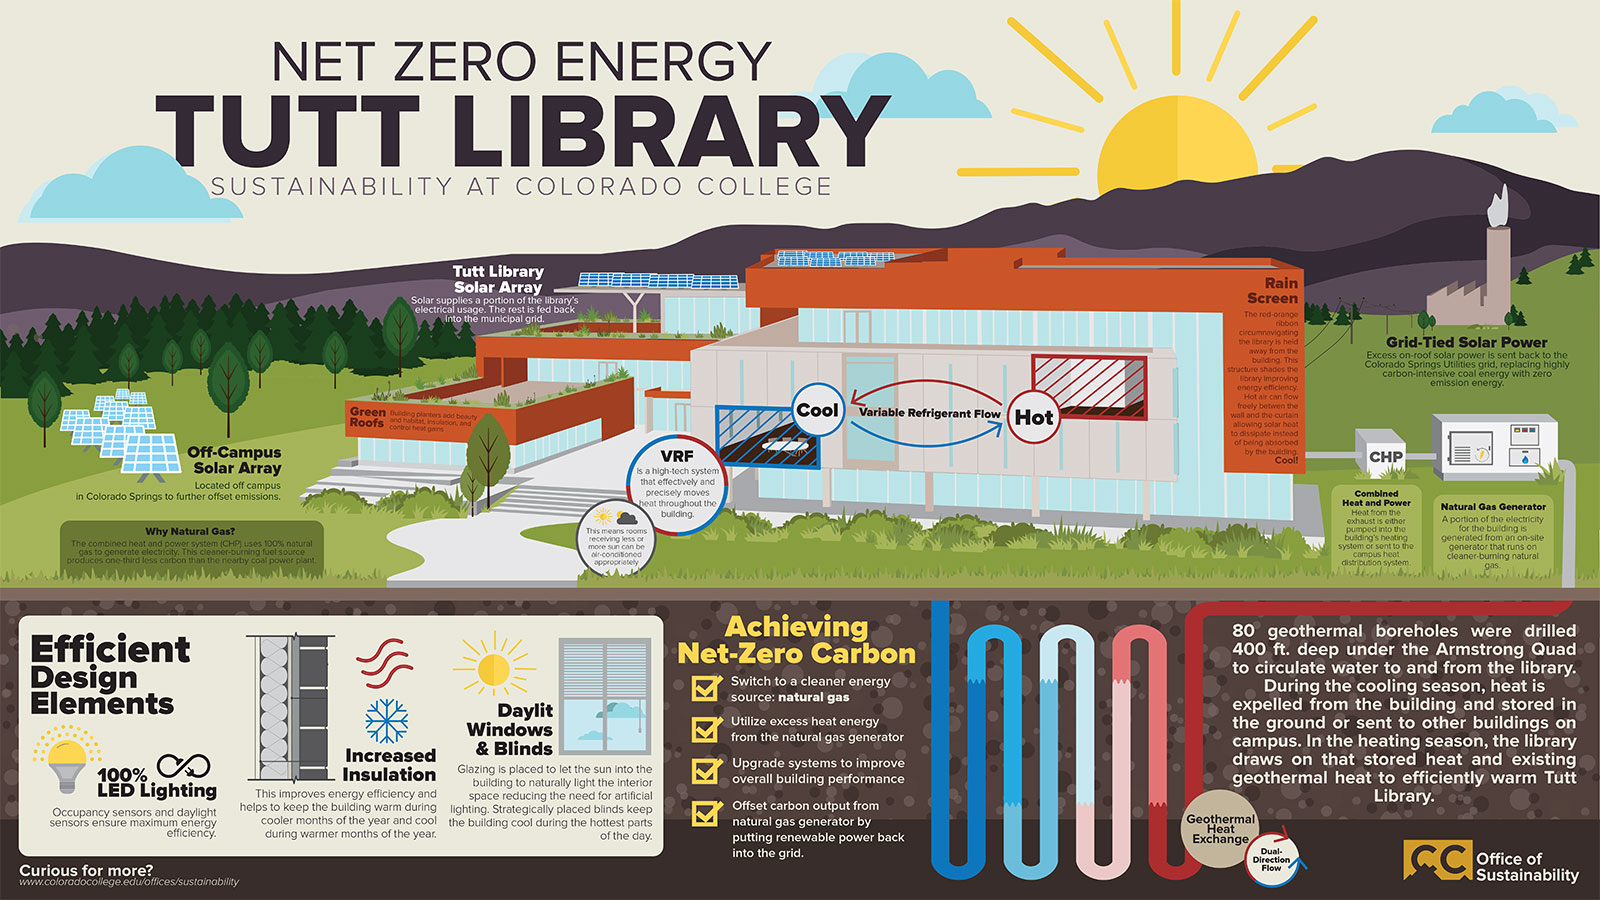 Tutt Library infographic